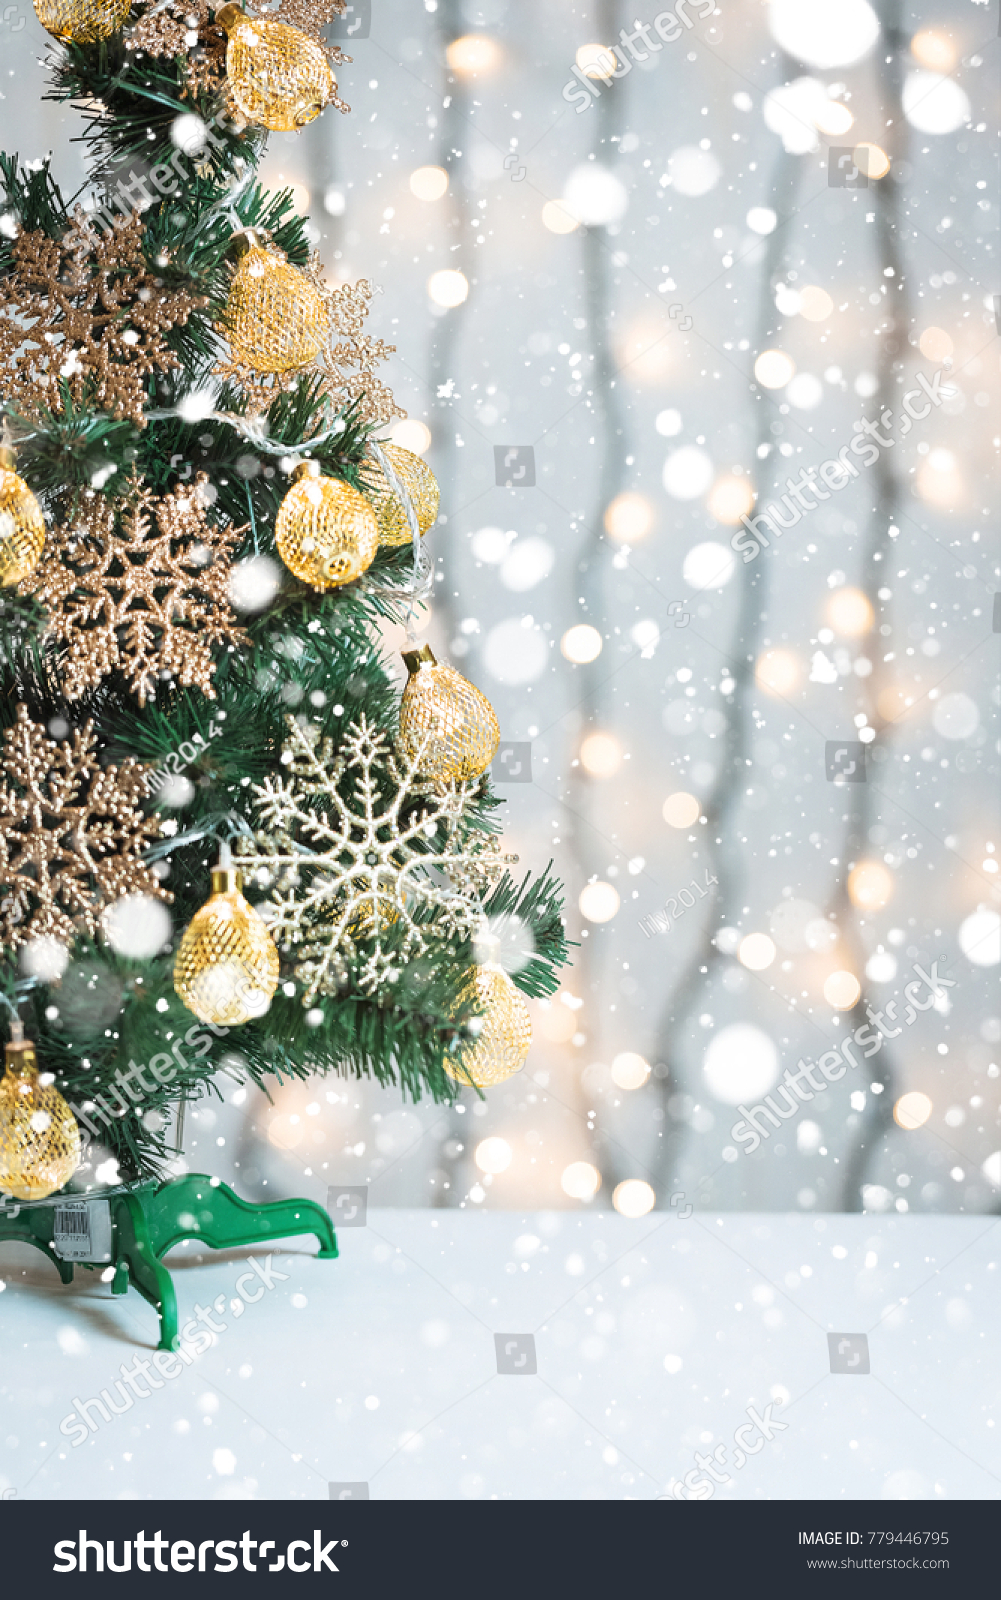 Christmas Tree Decorated Snowflakes Garland On Stock Photo (Edit Now ...